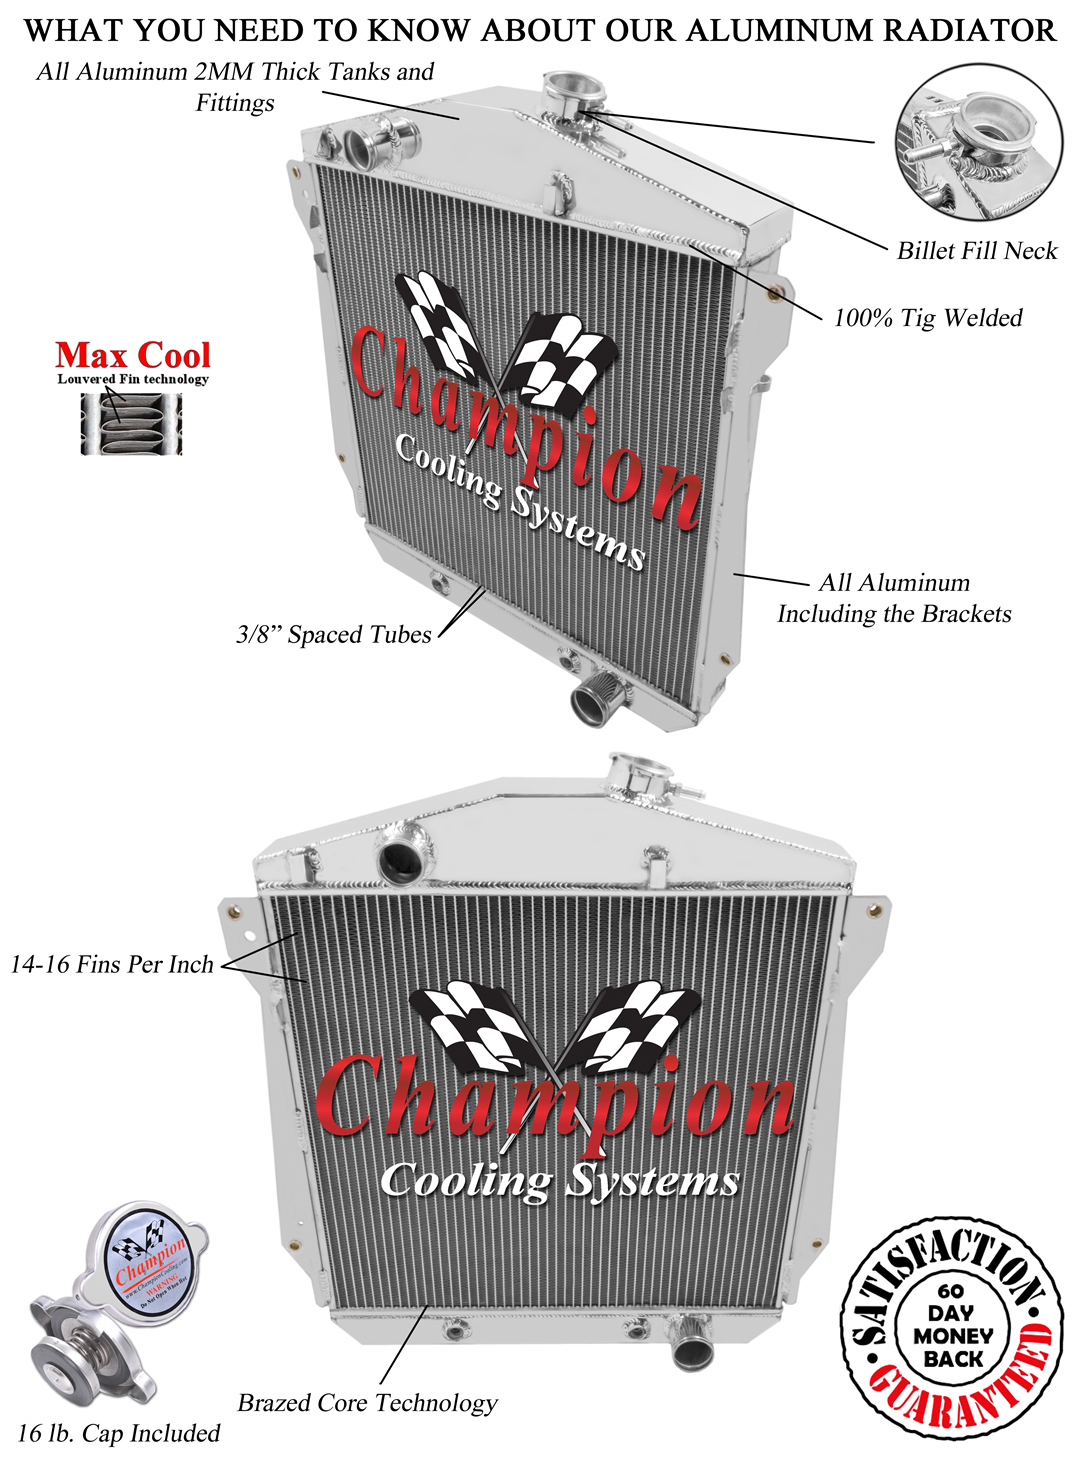 https://www.championcooling.com/photos/Photos%20White/Without%20Fans/4348CH/4348CH_%20white_diagram_1.JPG